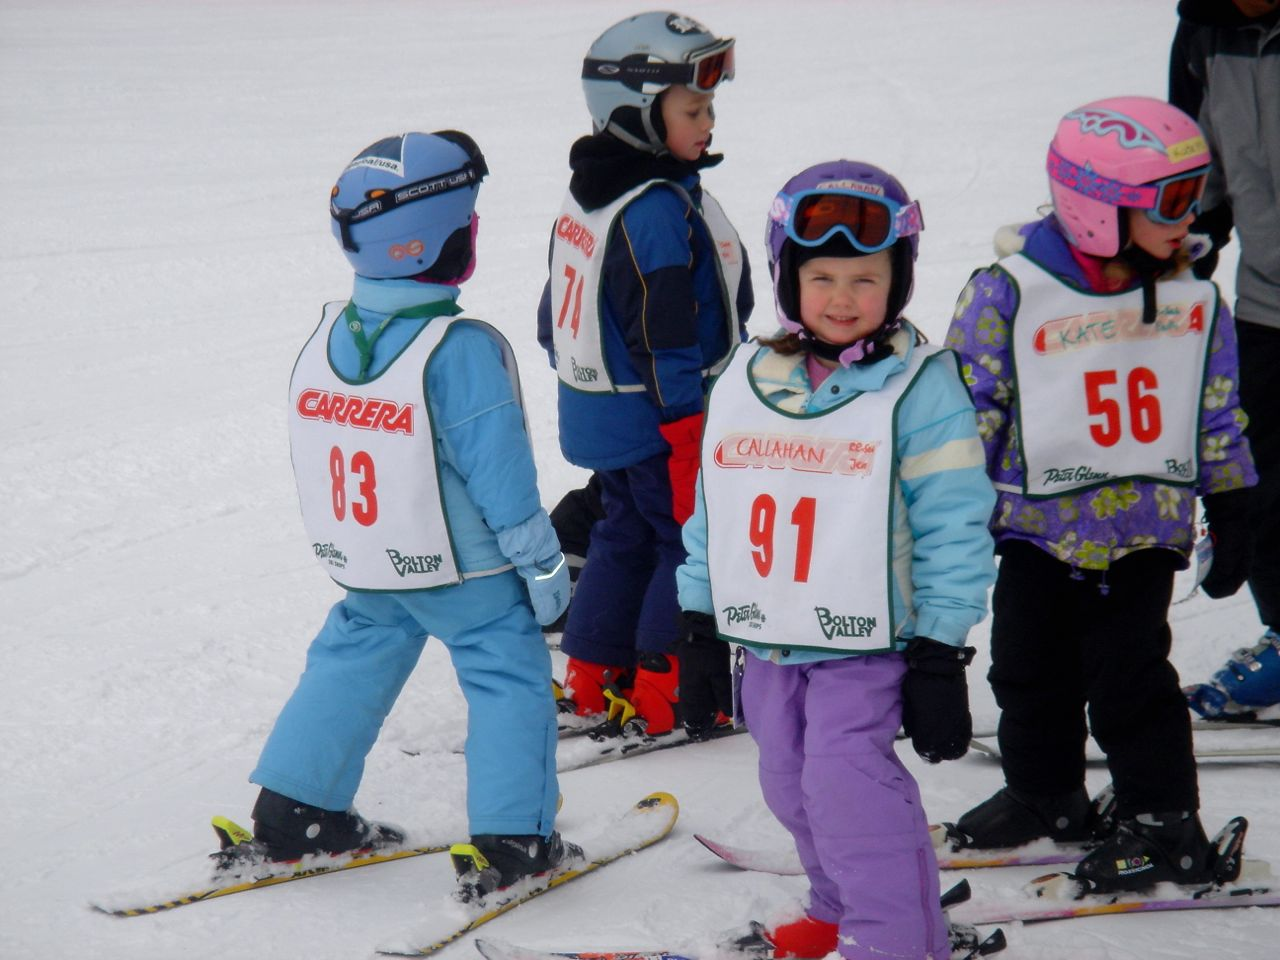 Learn to Turn at Bolton Valley Resort